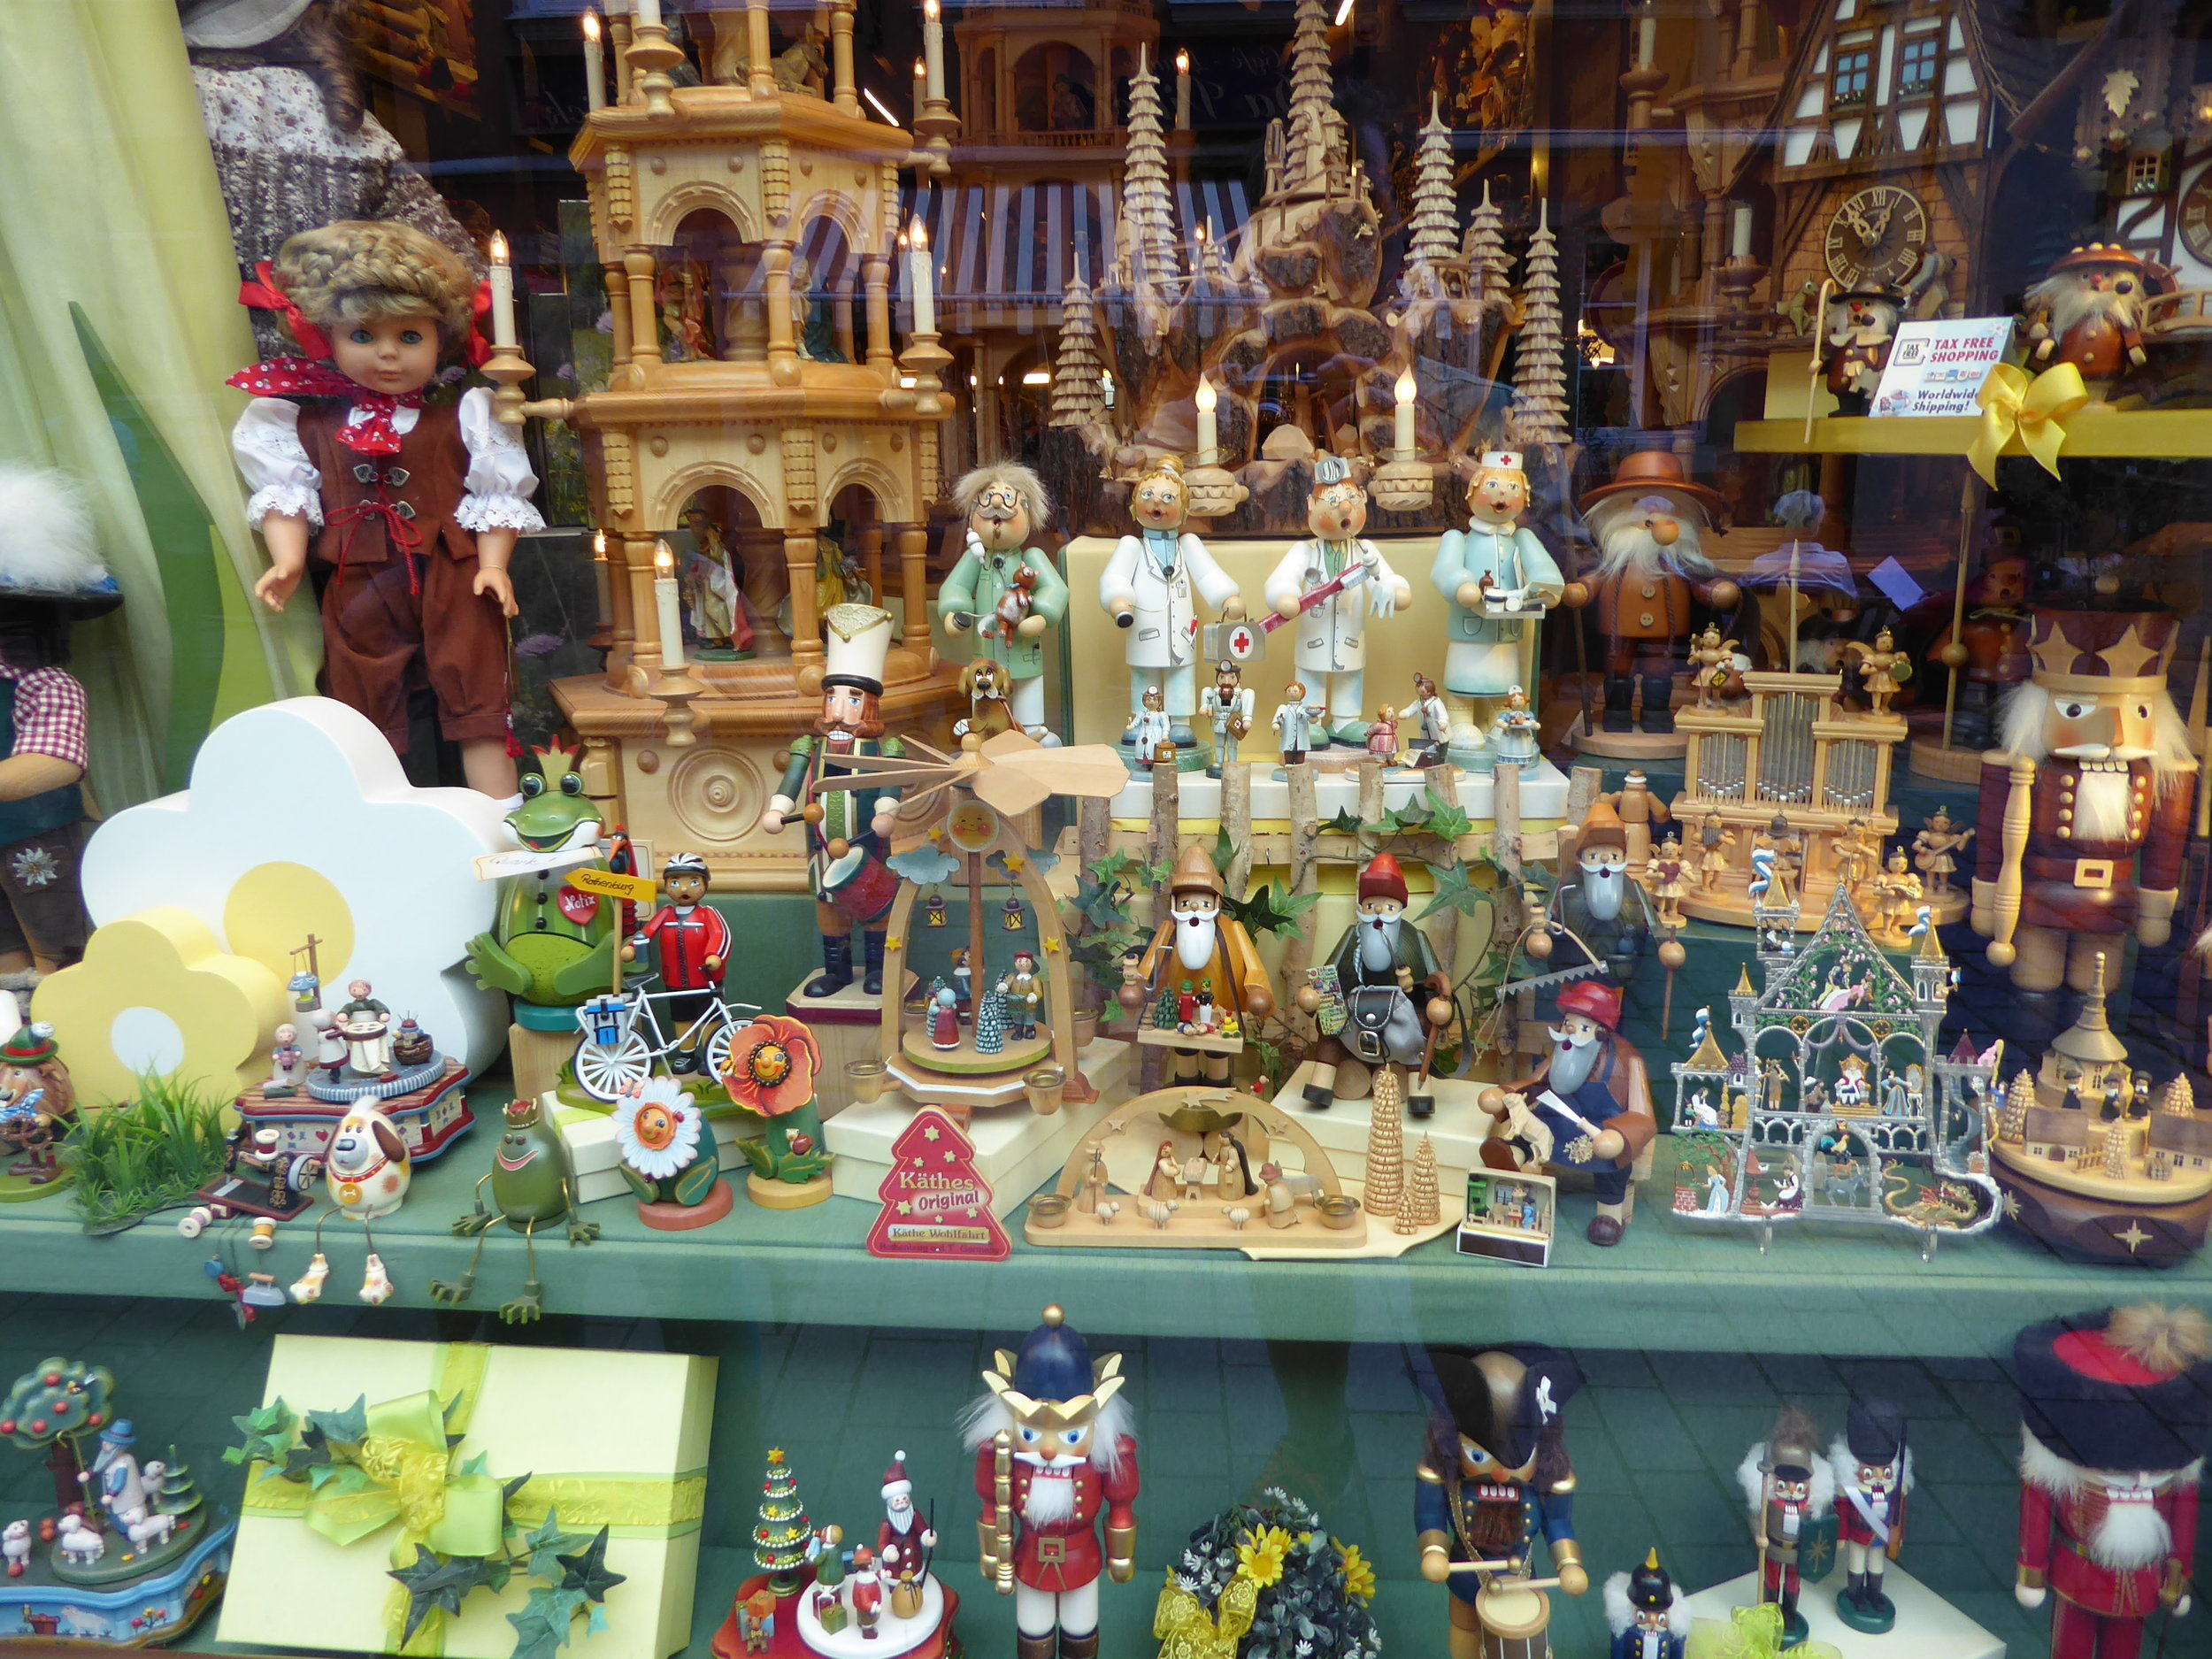 Toy store window in Rothenburg.